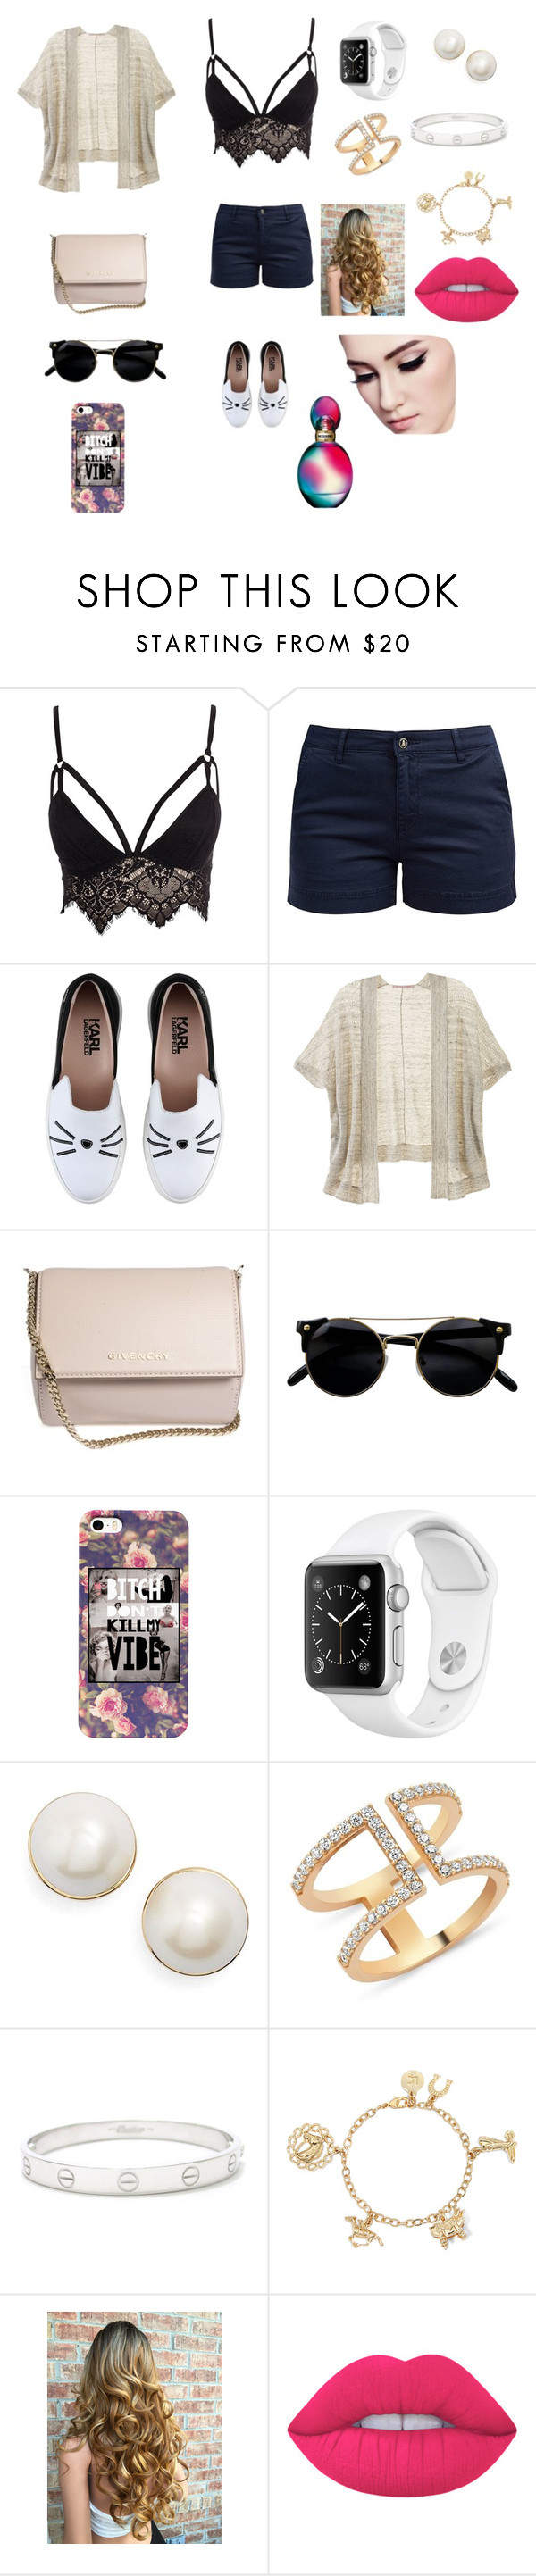 """❤️"" by keilydelgado on Polyvore featuring Club L, Barbour, Karl Lagerfeld, Victoria's Secret, Givenchy, Kate Spade, Amorium, Cartier, Lime Crime and Missoni"